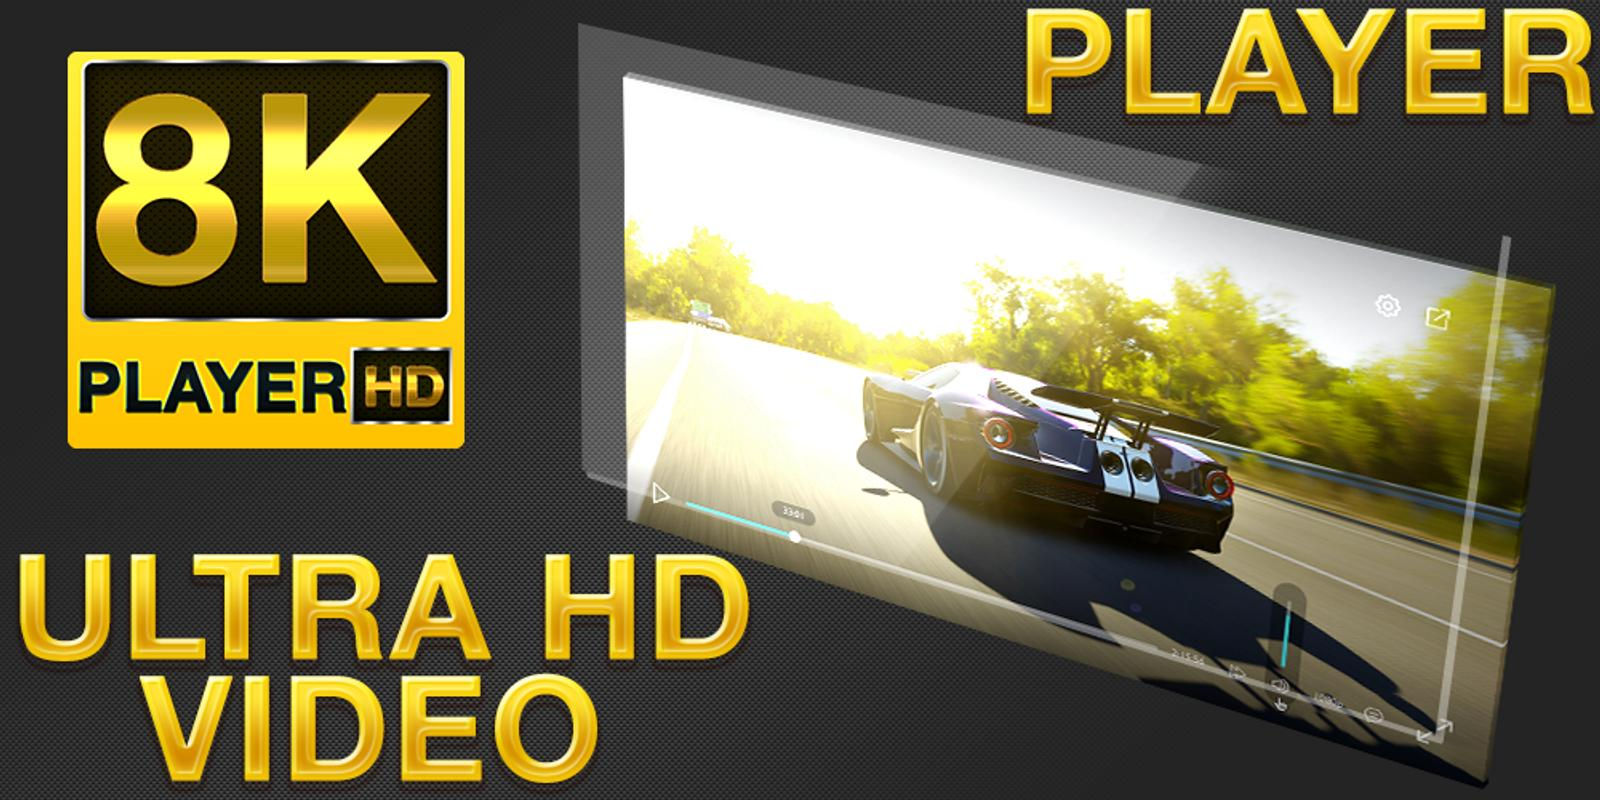 Free Full HD Video Player Apps Full Version Download For PC